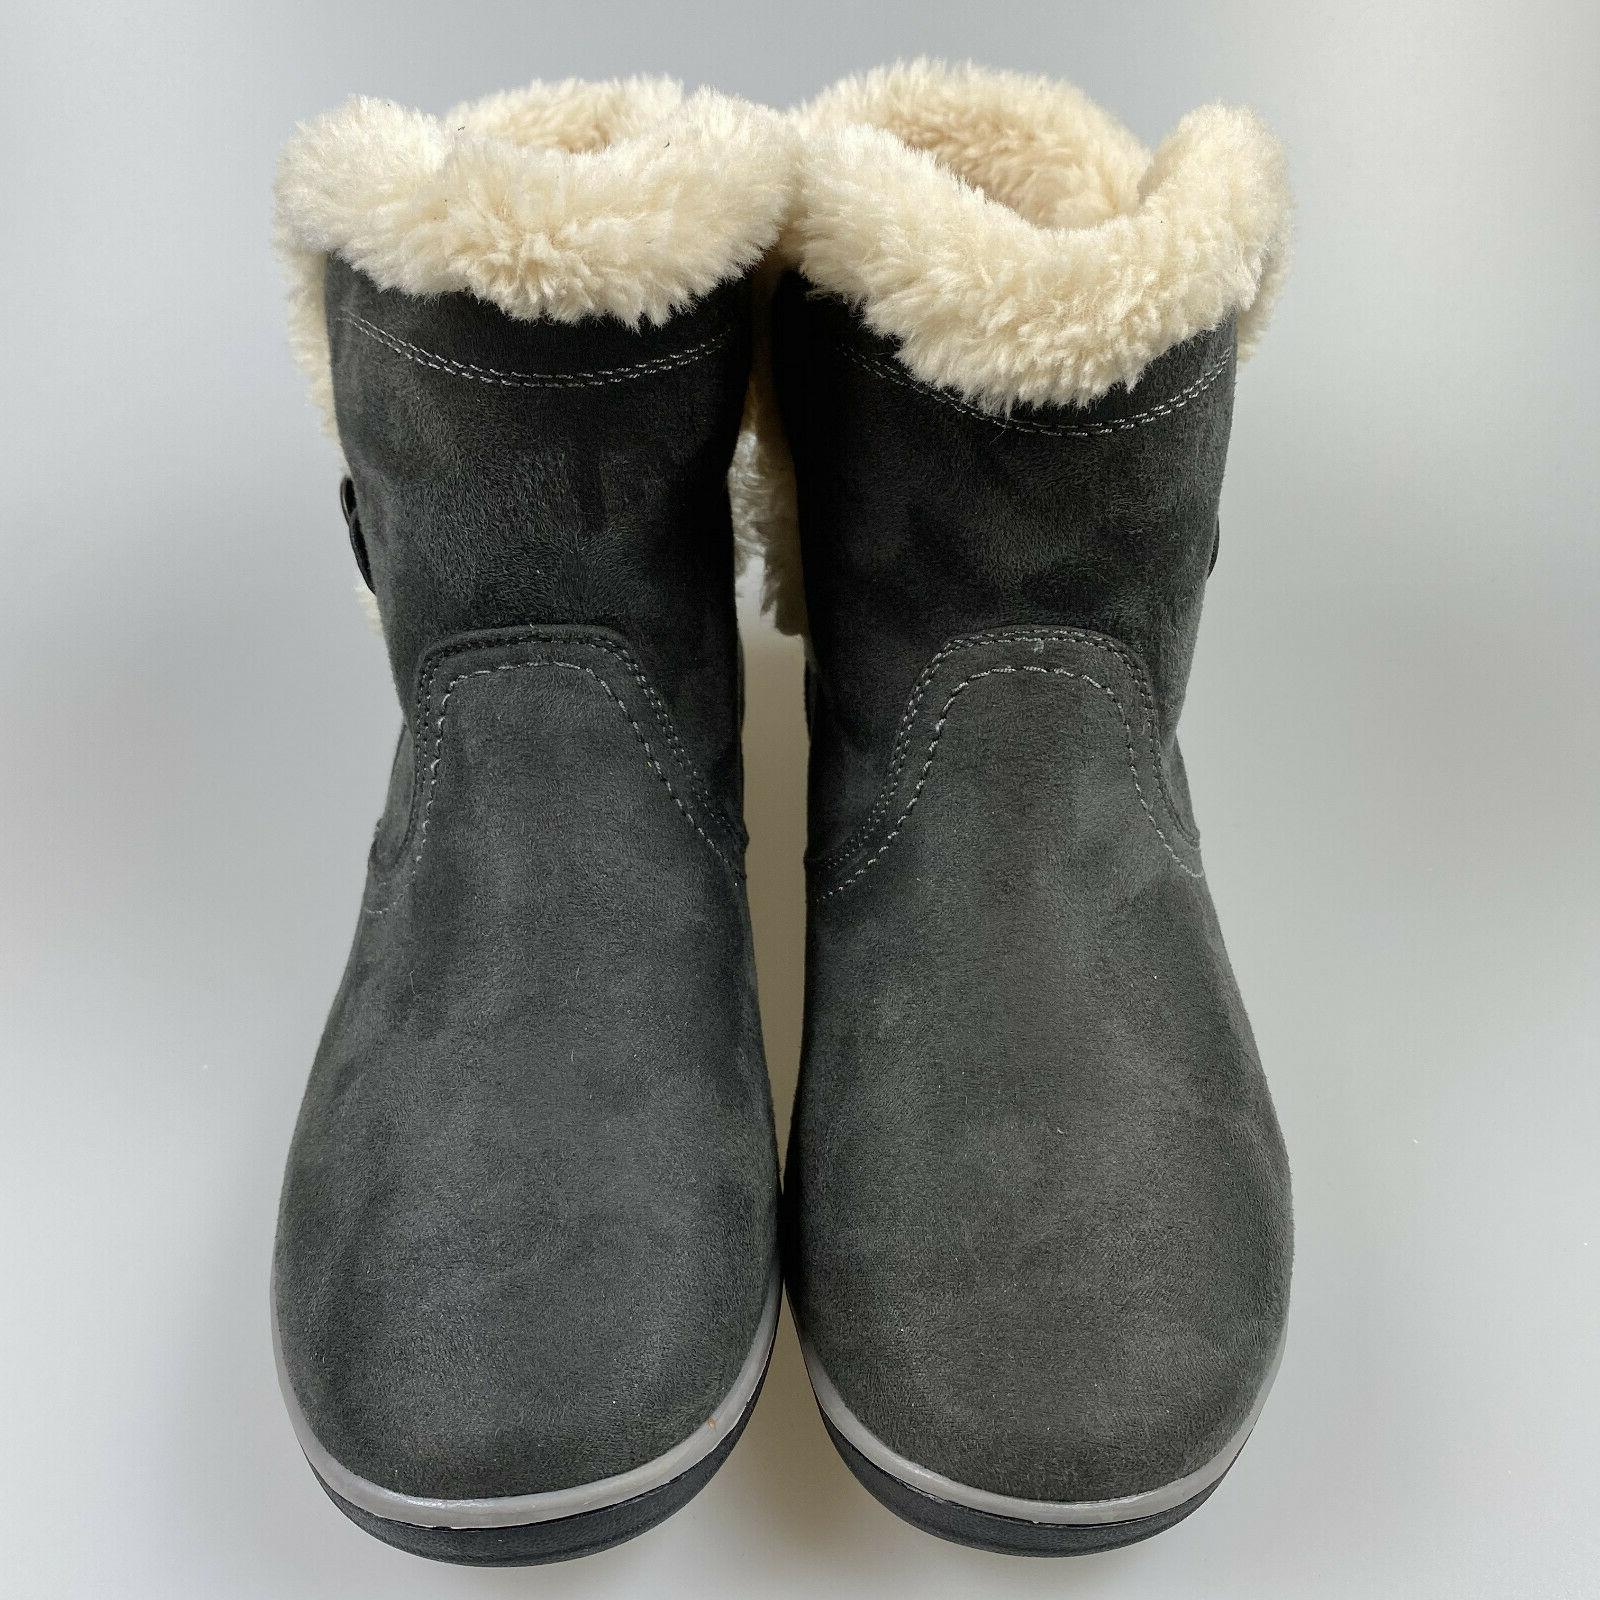 $69 Win Women's Suede Boots Lined Shoes NWT